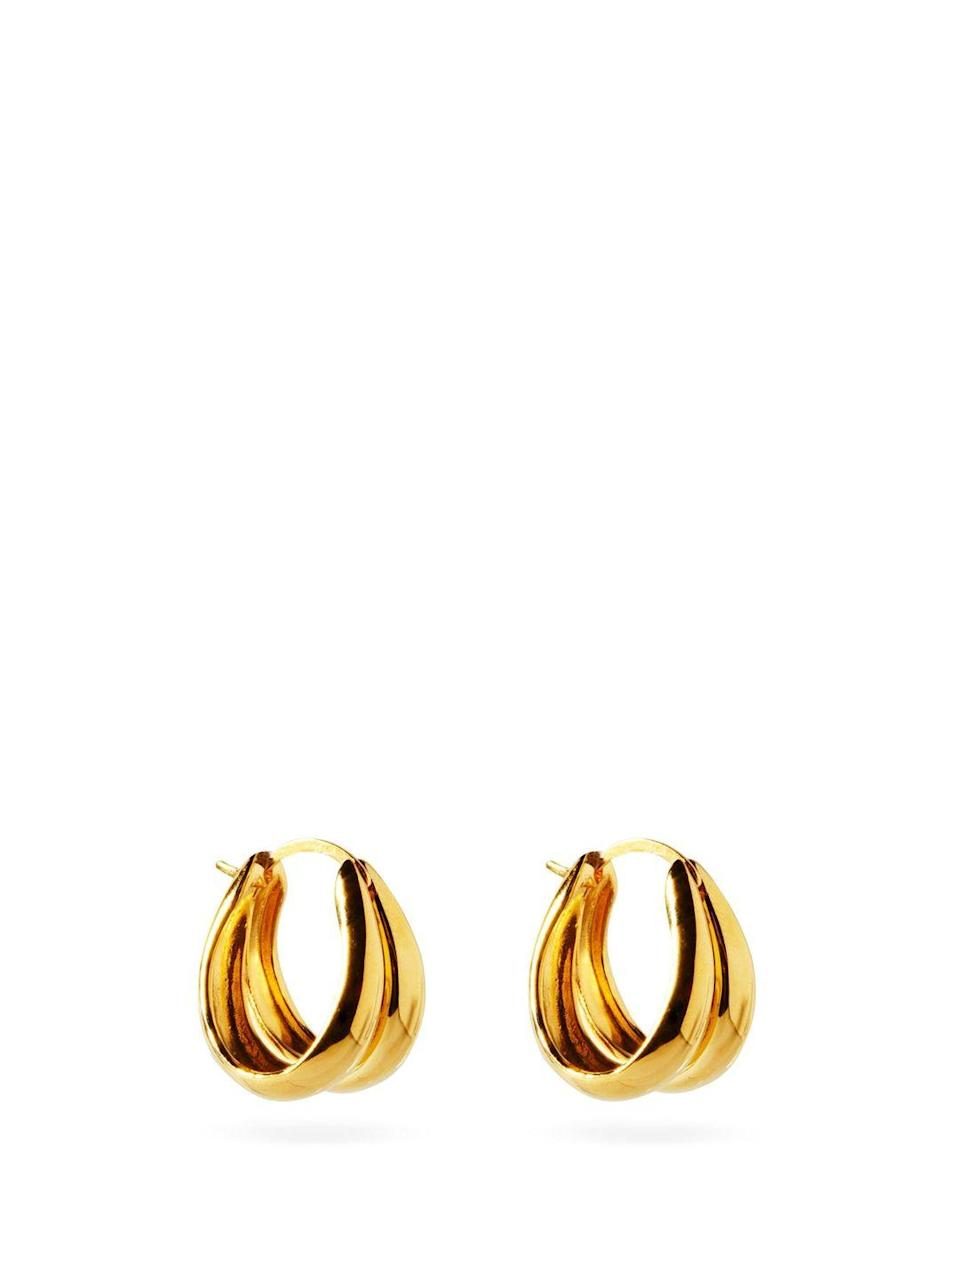 """<p>Sophie Buhai</p><p>Was £330.00</p><p>Now £231.00</p><p><a class=""""link rapid-noclick-resp"""" href=""""https://go.redirectingat.com?id=127X1599956&url=https%3A%2F%2Fwww.matchesfashion.com%2Fproducts%2FSophie-Buhai-Double-18kt-gold-vermeil-hoop-earrings-1389251&sref=https%3A%2F%2Fwww.elle.com%2Fuk%2Ffashion%2Fwhat-to-wear%2Fg36616066%2Fmatches-fashion-sale%2F"""" rel=""""nofollow noopener"""" target=""""_blank"""" data-ylk=""""slk:SHOP NOW"""">SHOP NOW</a></p><p>Simple gold hoops are always a winner. </p>"""